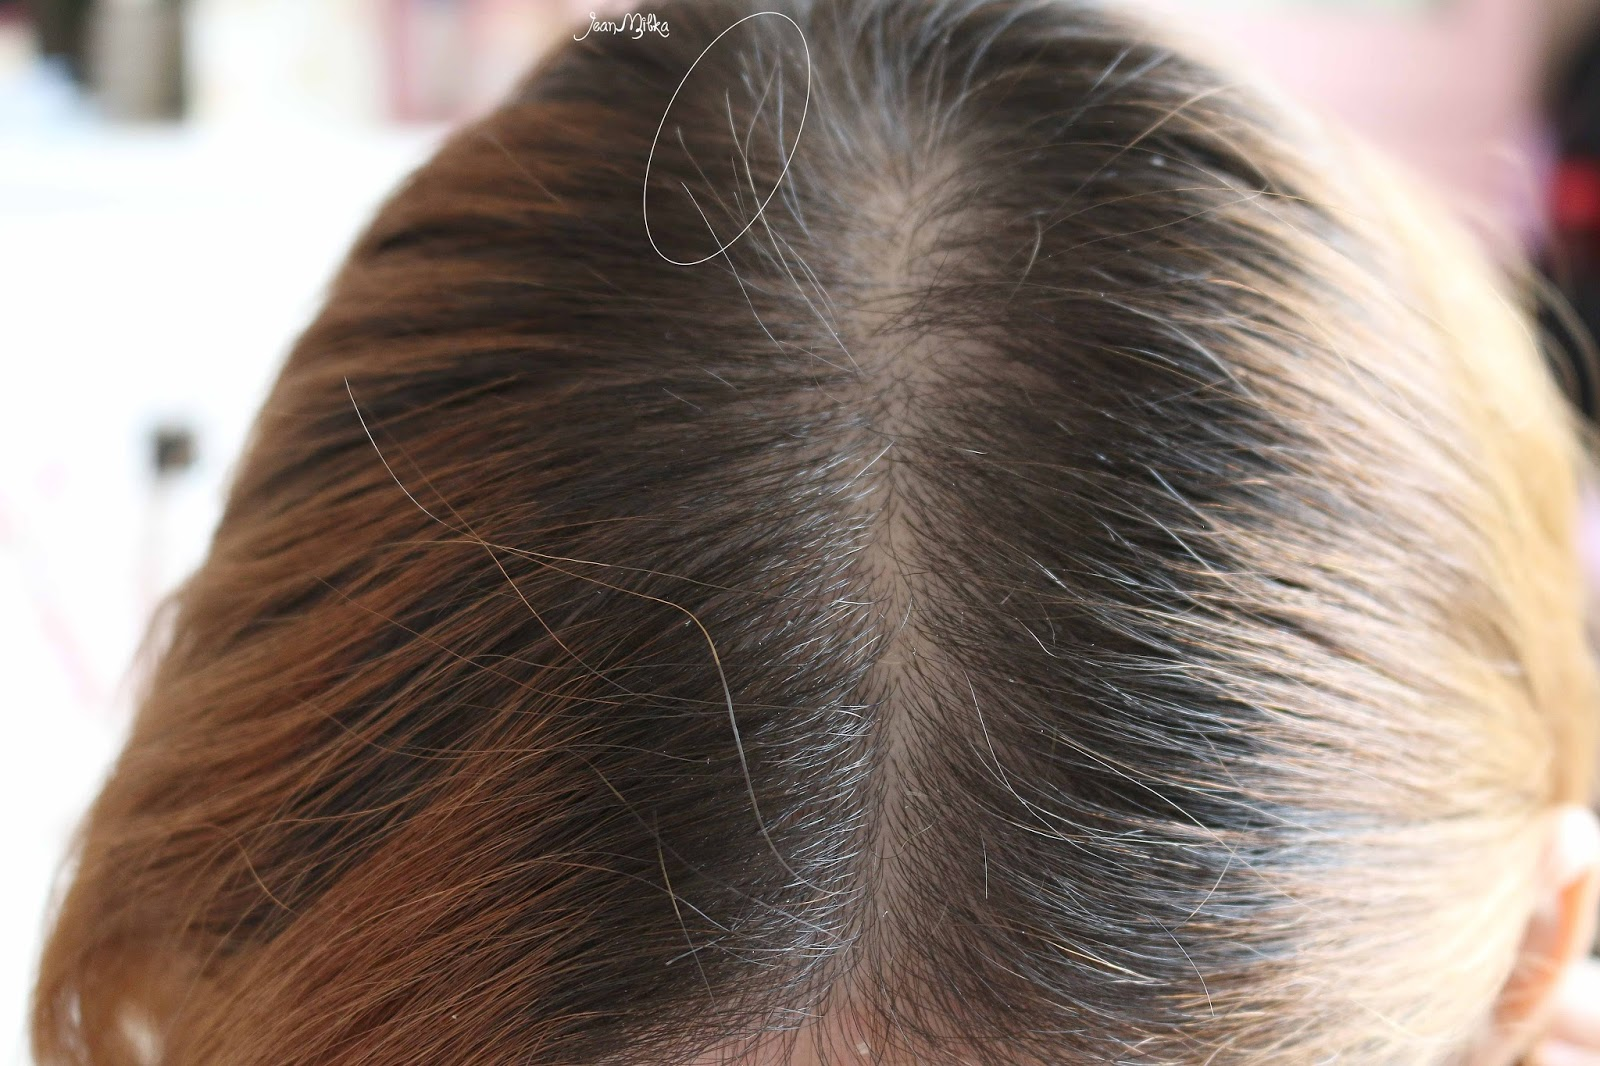 hair, hair care, hair loss, hair growth, cg210, cg 210, abbott, solusi rambut rontok, hair treatment